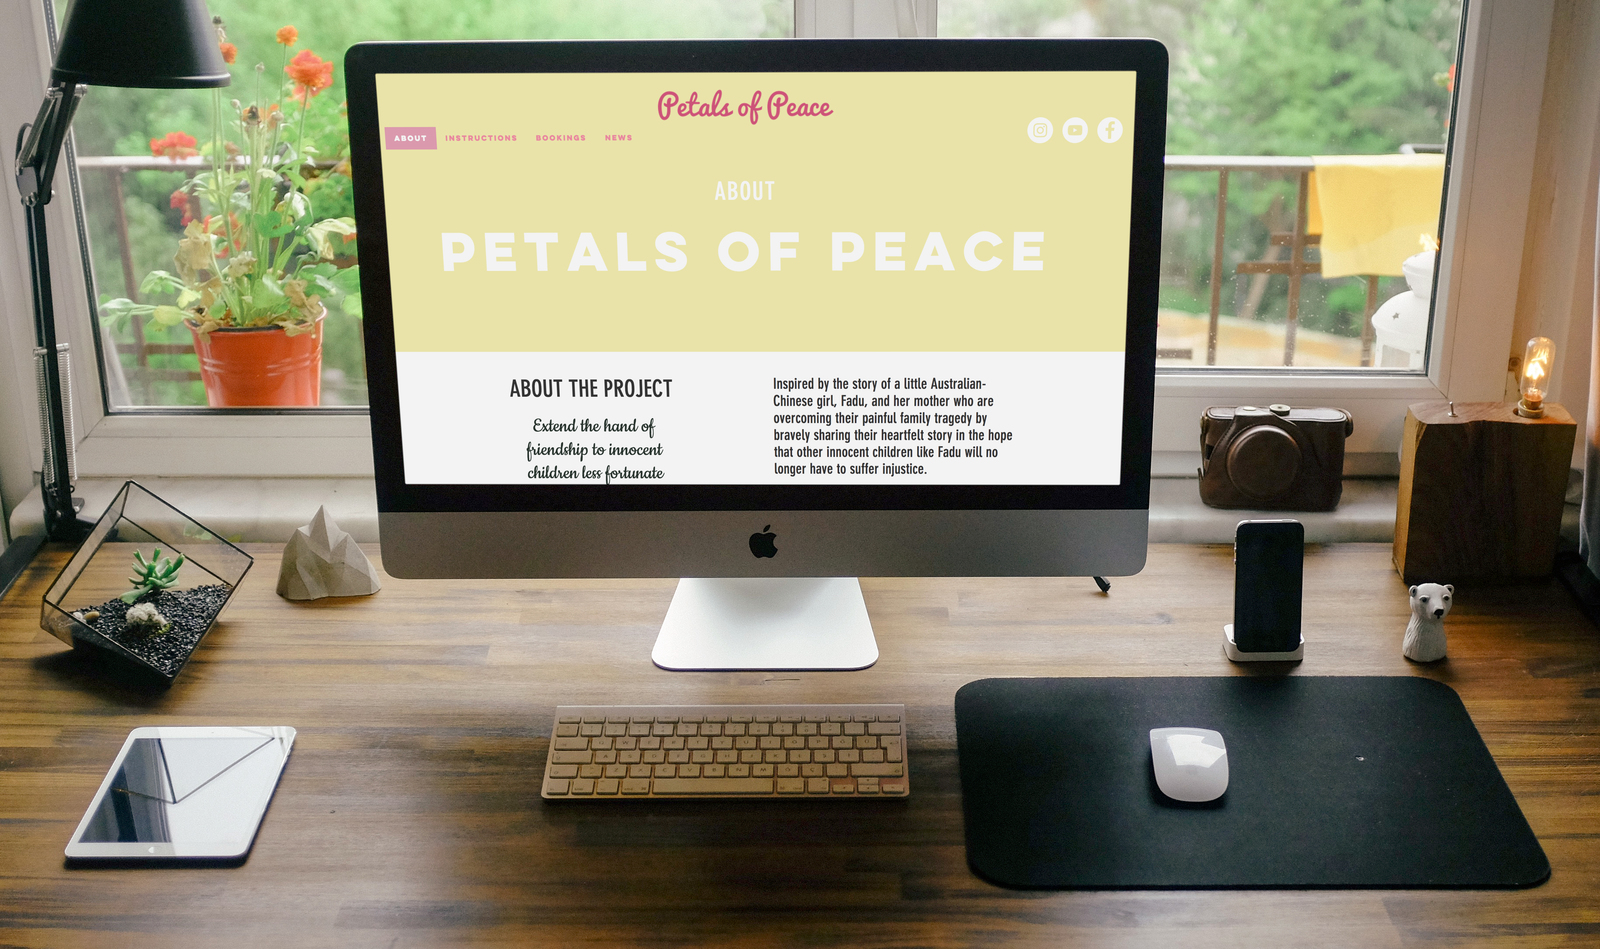 retro-events-petals-of-peace-website-design-ngo-non-profit-designer.jpg